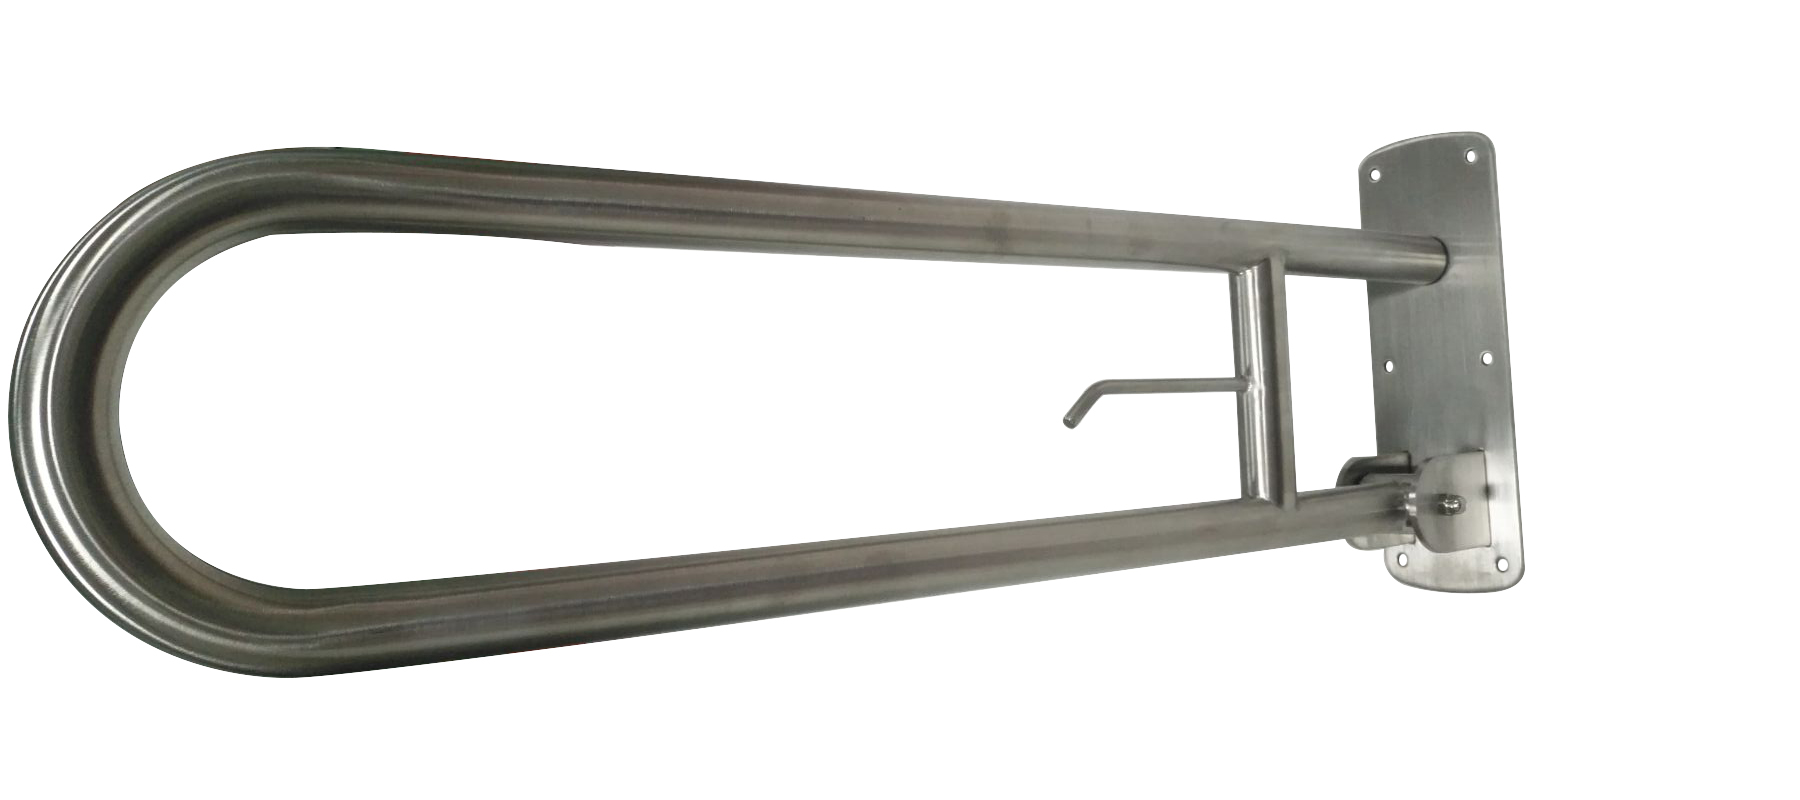 high quality best grab bars company for hotel-1